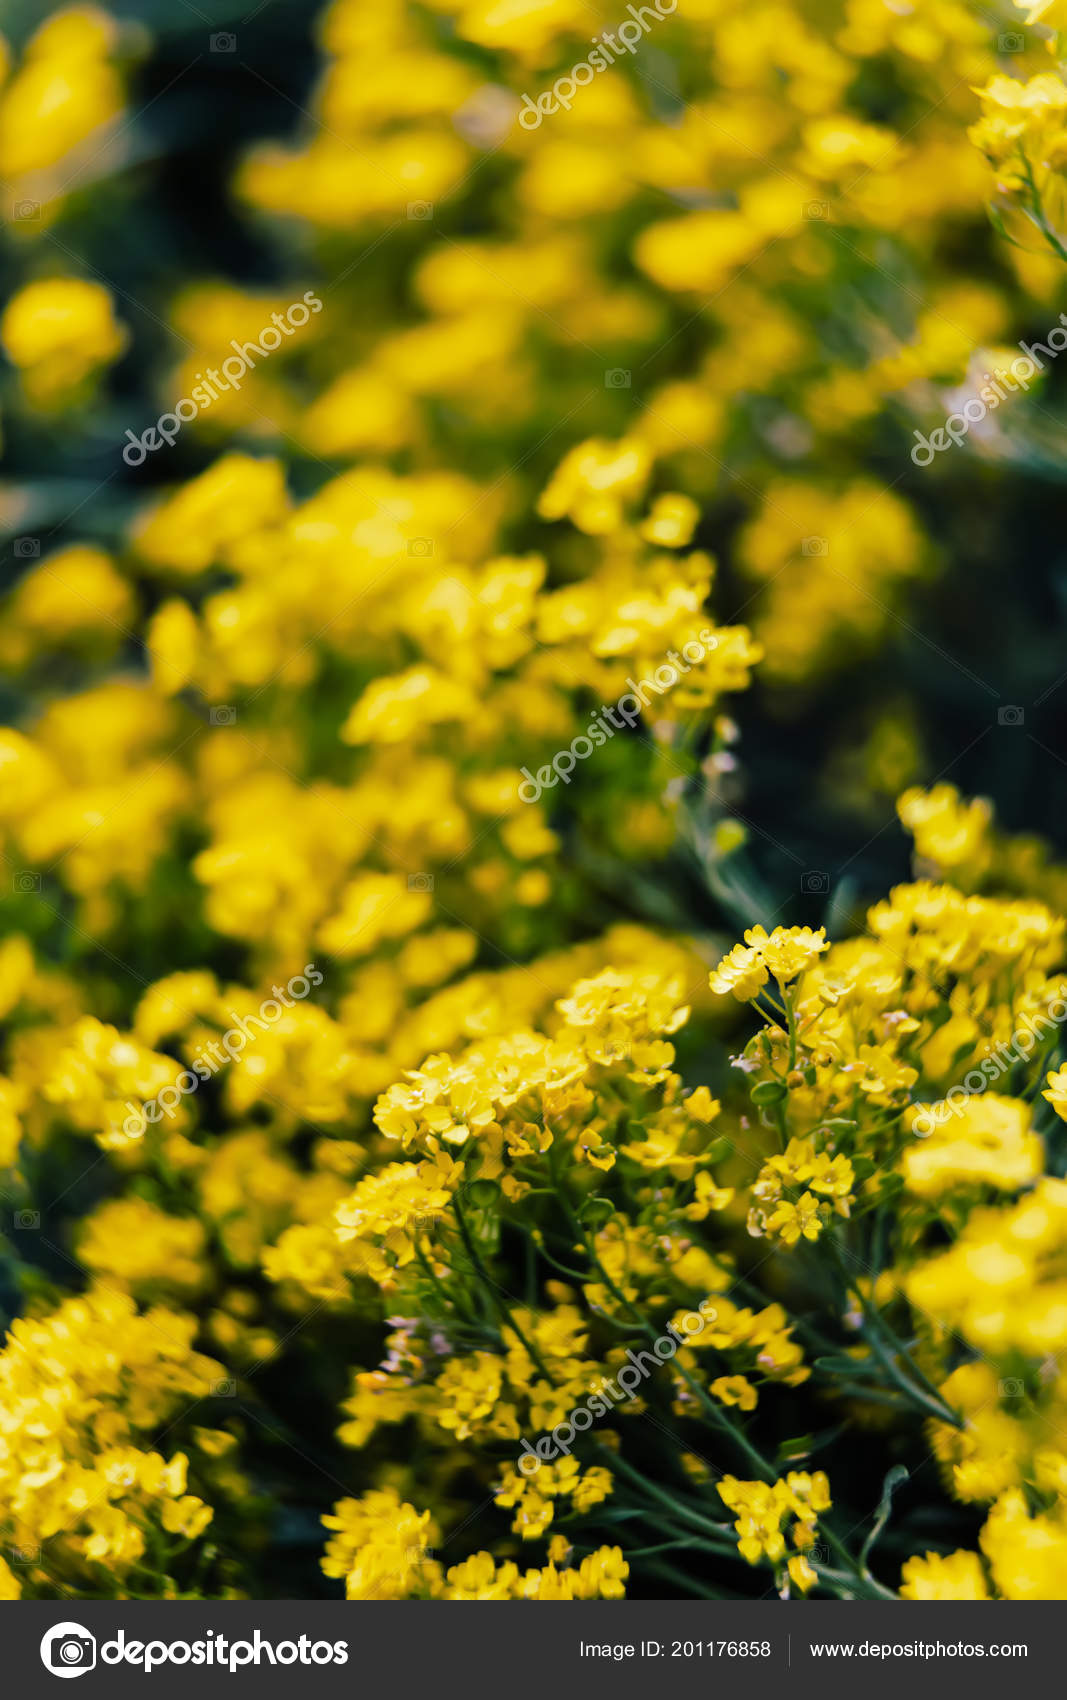 Soft focus image small yellow flowers aurinia saxatilis spring time soft focus image of small yellow flowers of aurinia saxatilis in the spring time in the garden common names include basket of gold goldentuft alyssum mightylinksfo